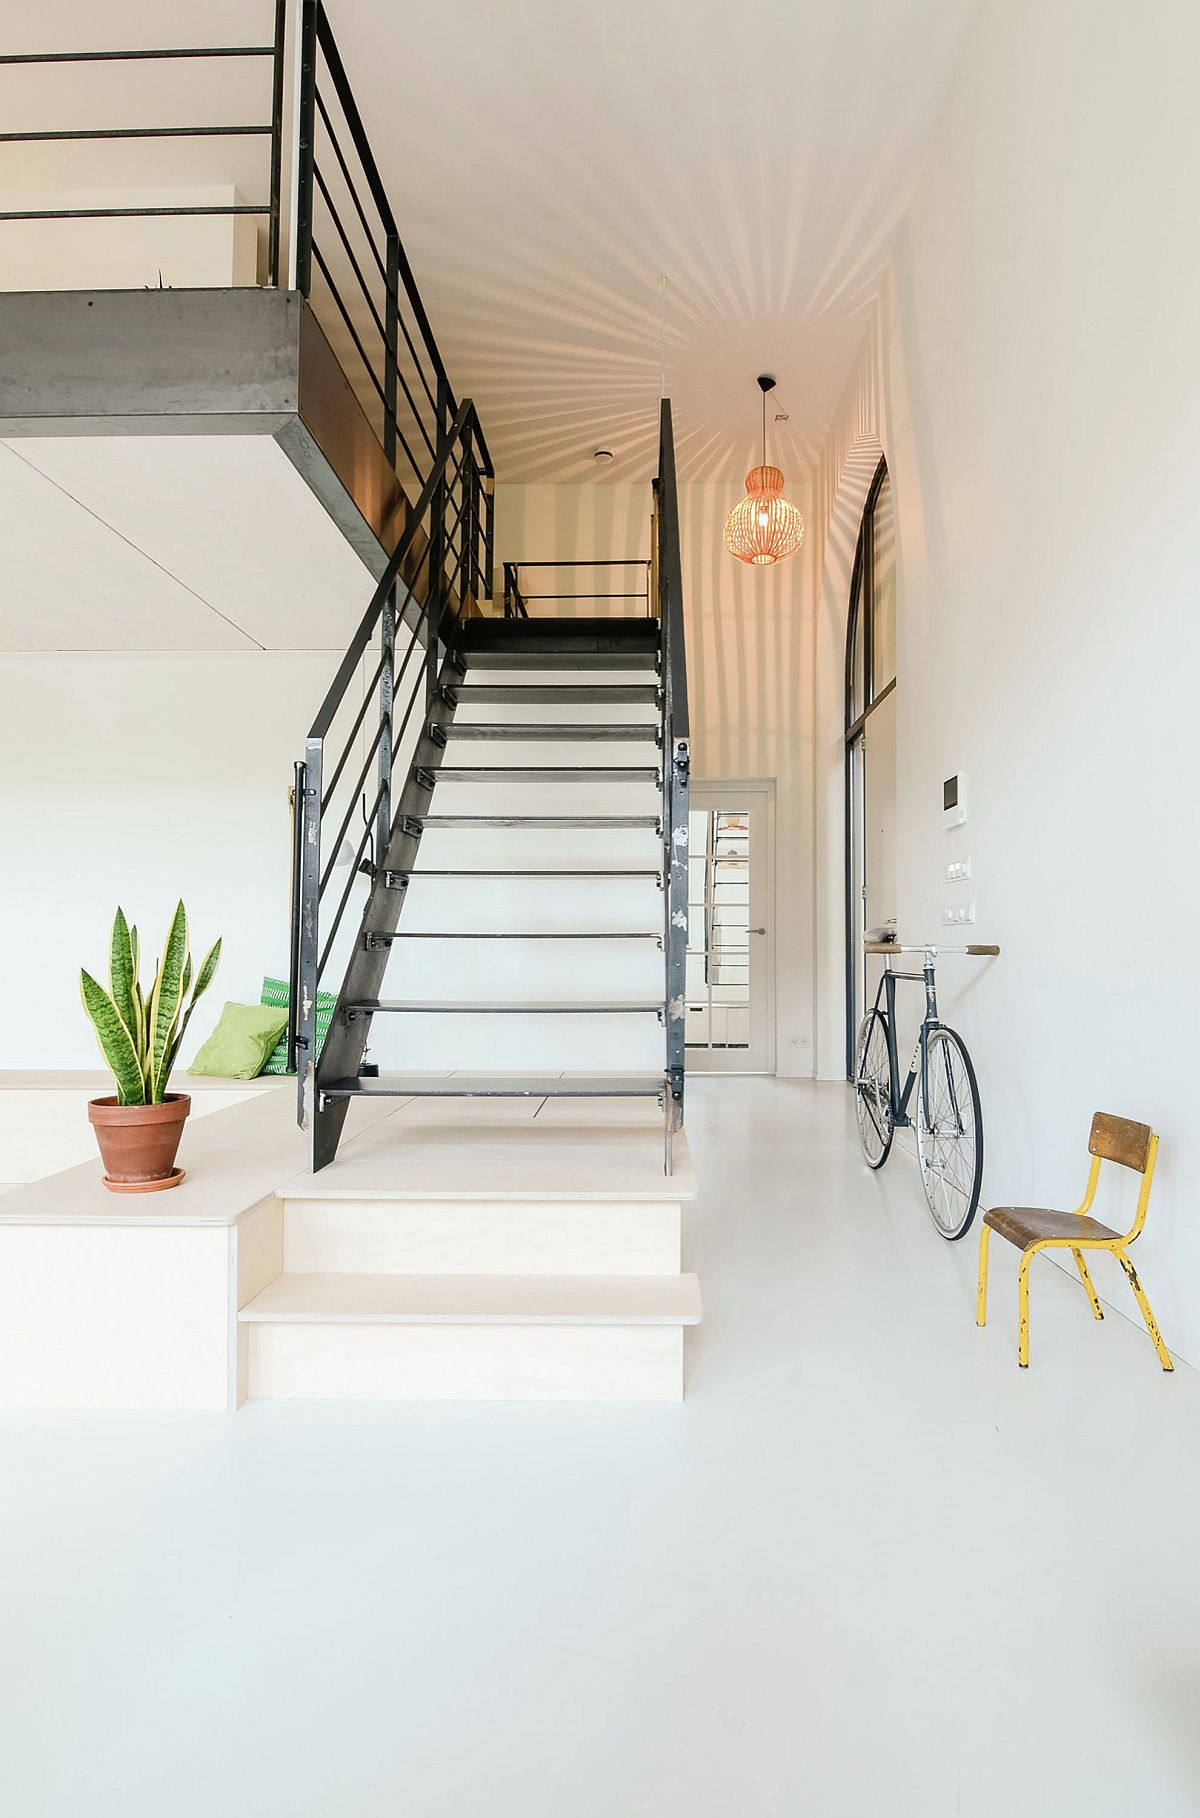 Lighting adds more than just illumination to the living space